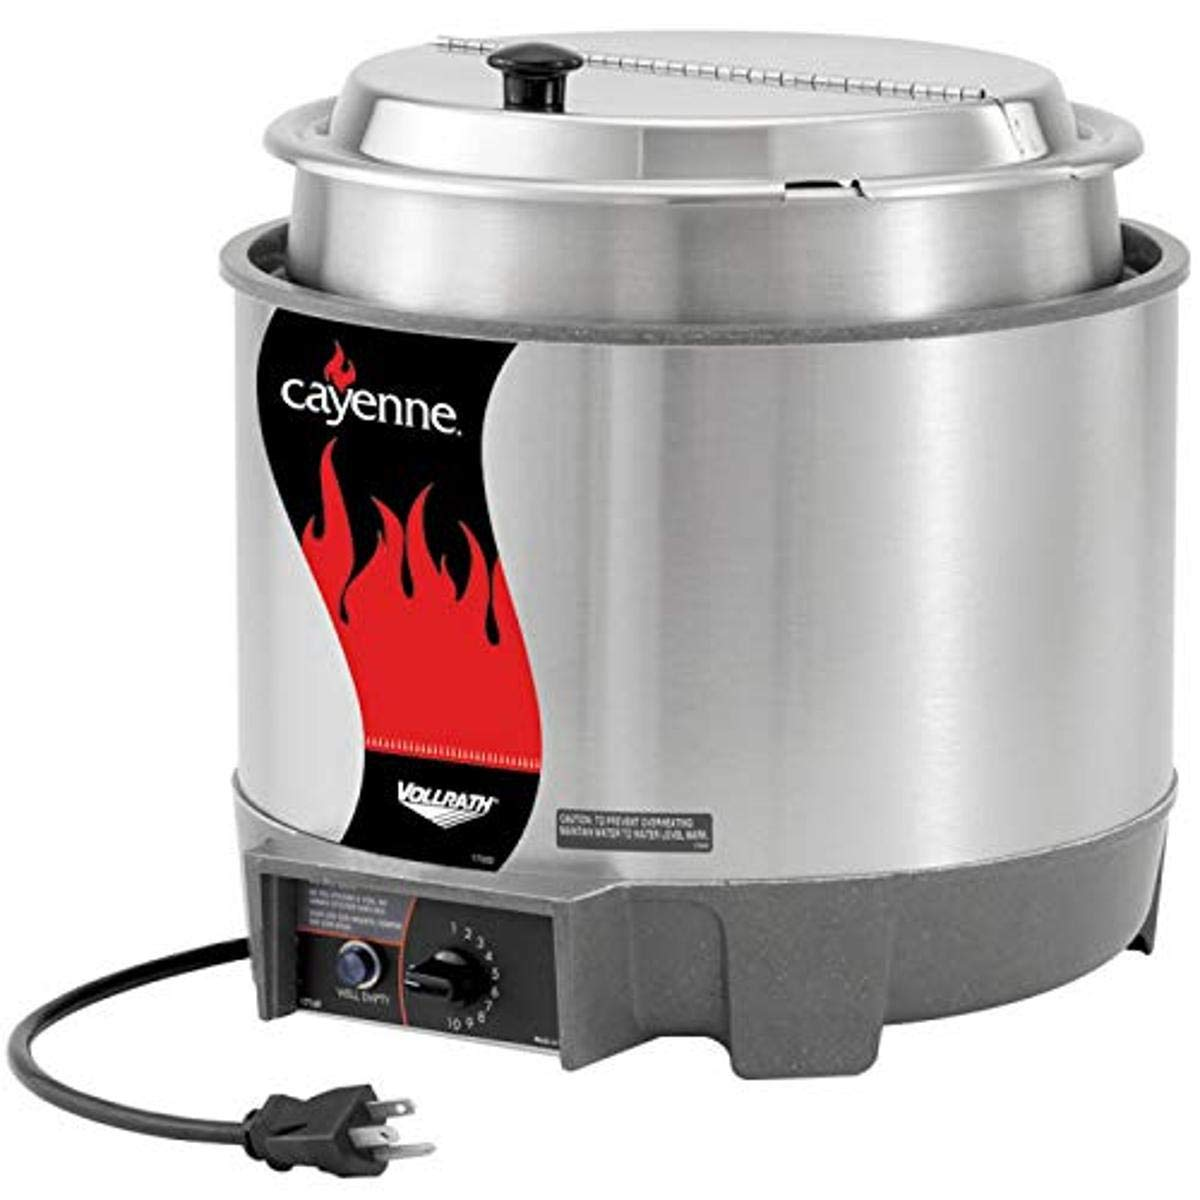 Vollrath 72009 Cayenne 11-Quart Round Heat 'N Serve Rethermalizer (w/Inset and Cover), 120-Volts, NSF